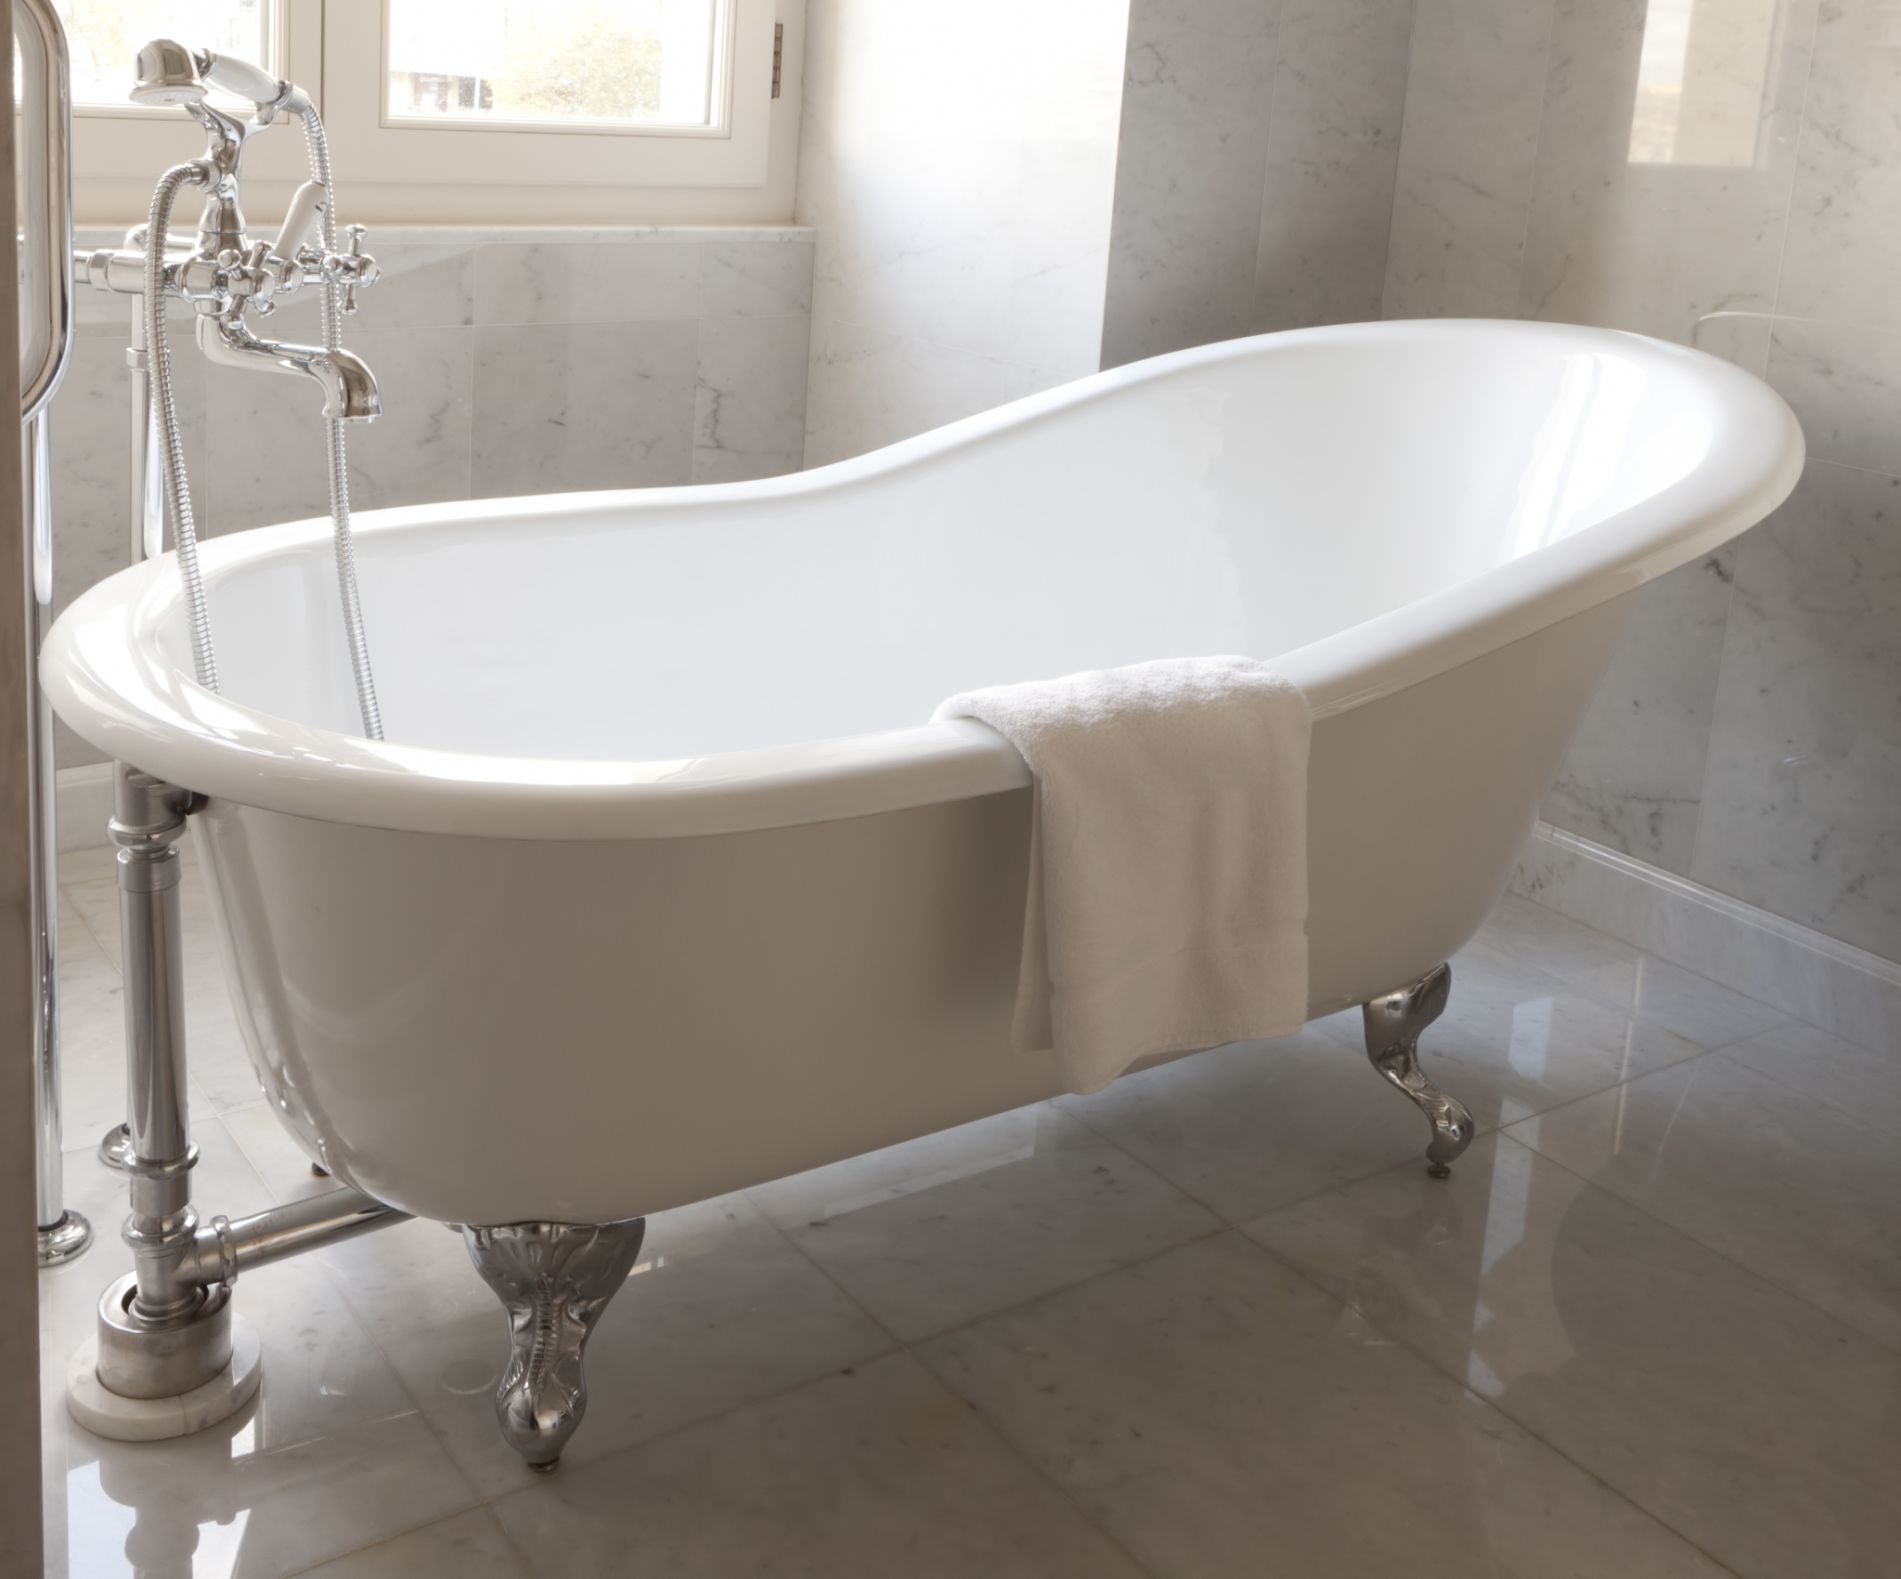 Bathtub Reglazing: How You Can Refinish Your Tub